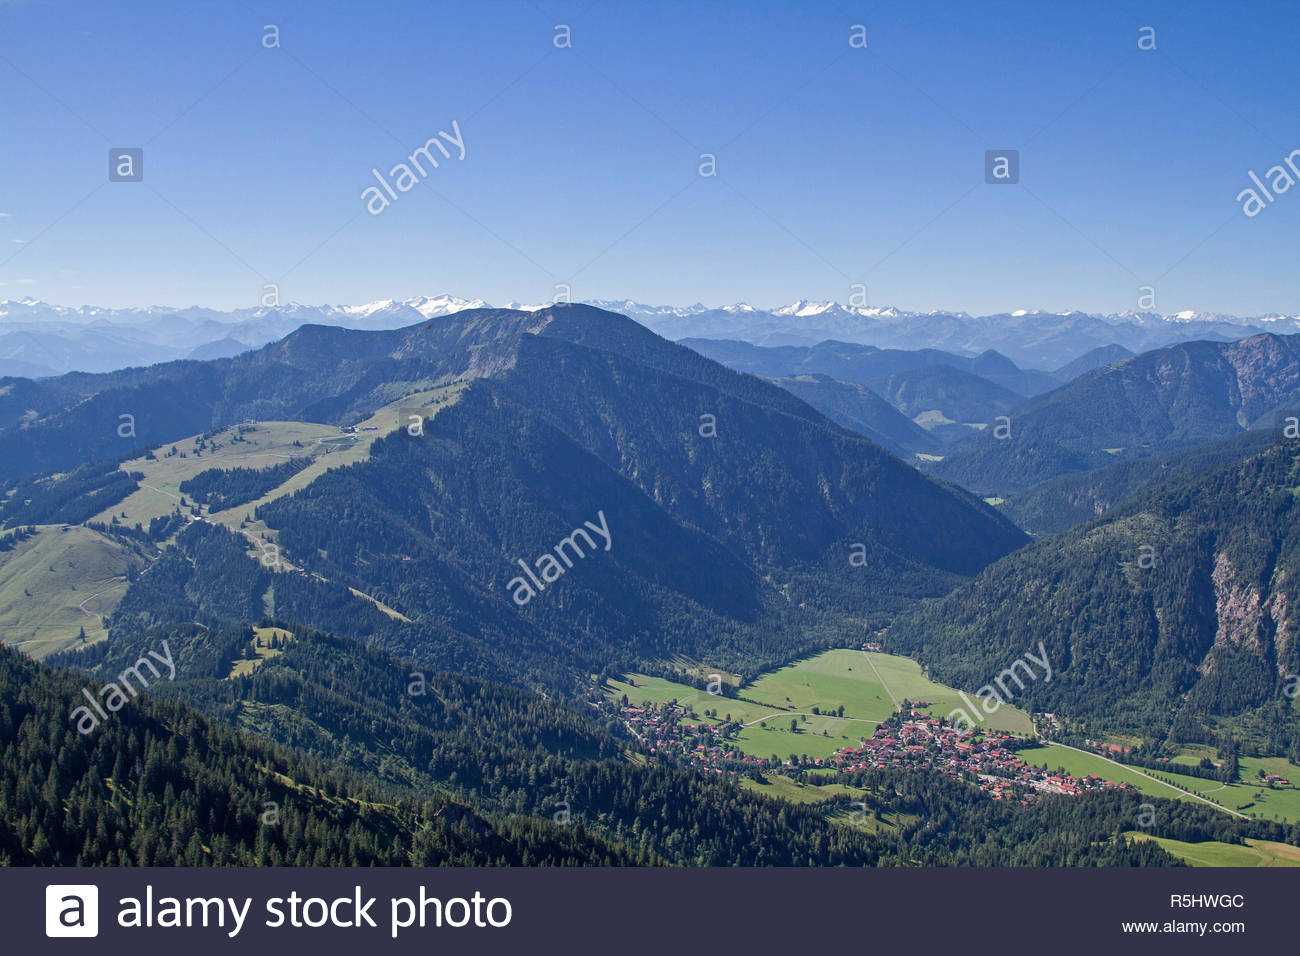 bayrischzell in the leitzachtal - Stock Image